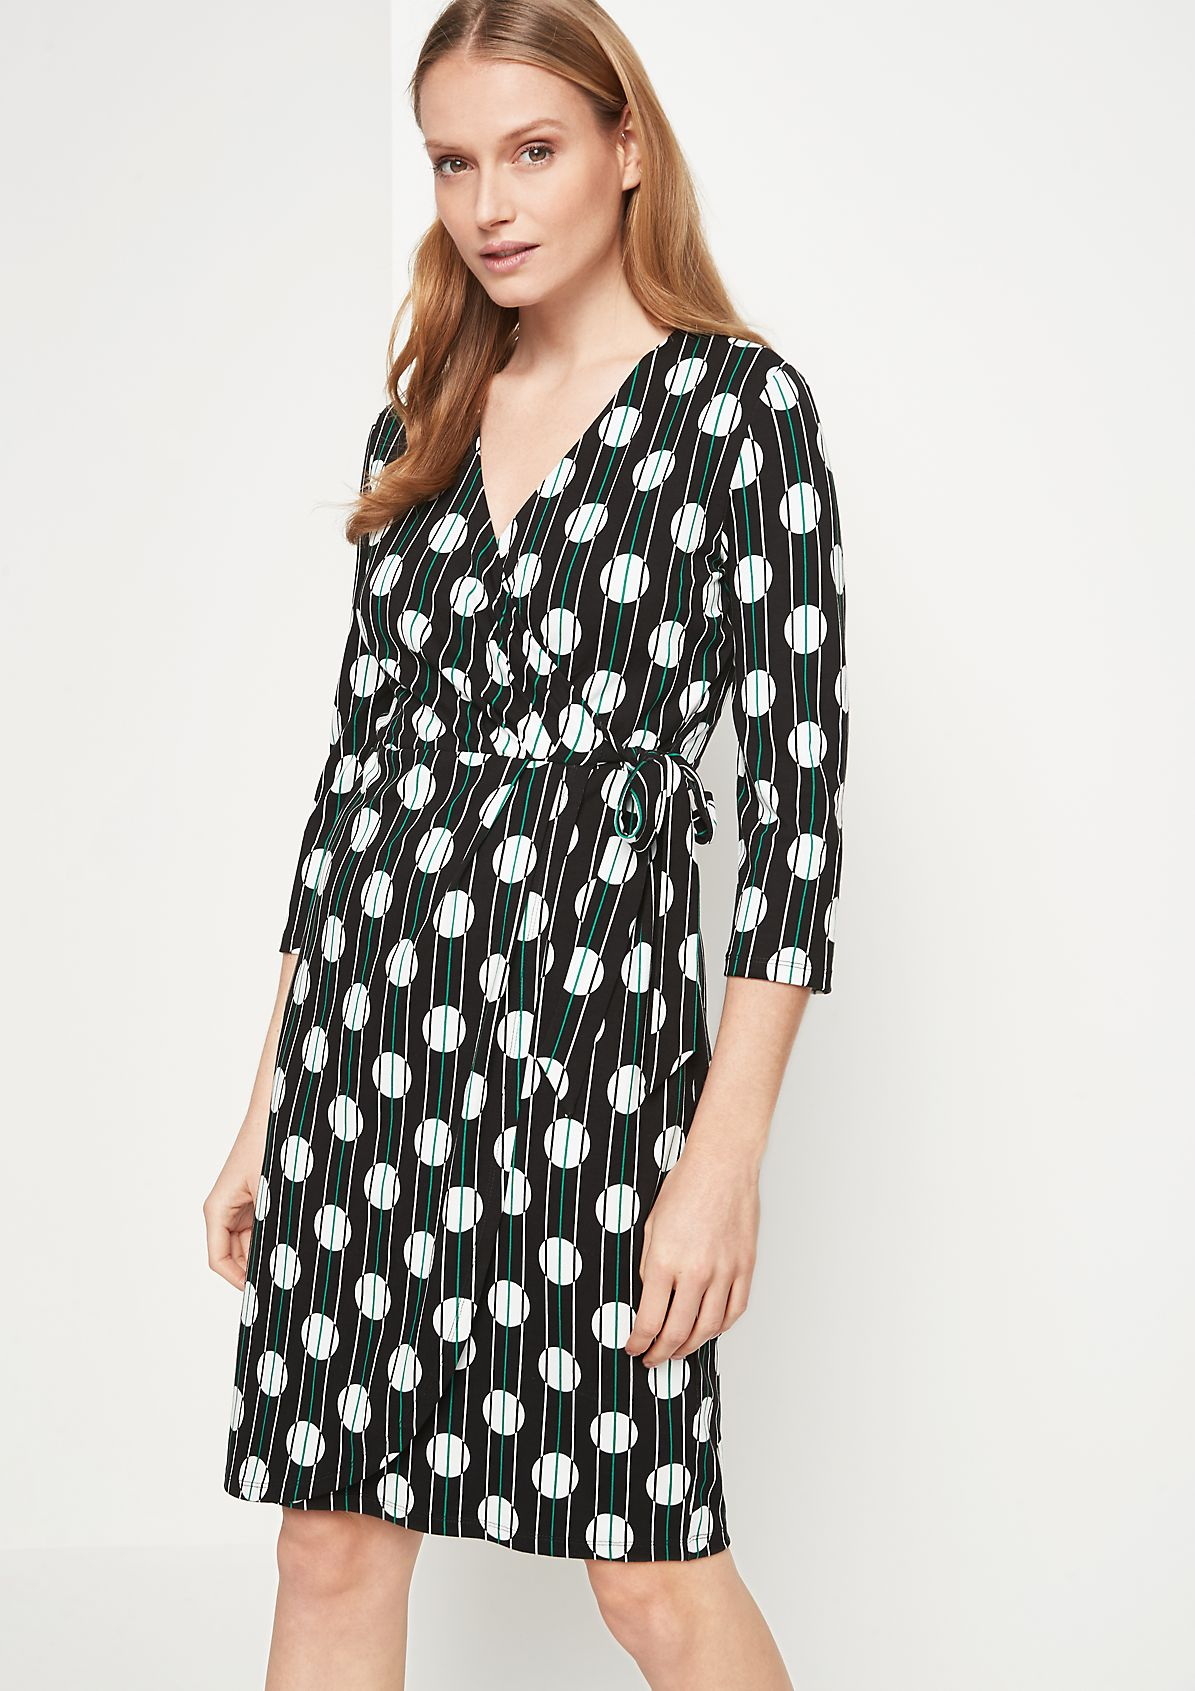 Jersey dress with 3/4-length sleeves and an all-over pattern from comma